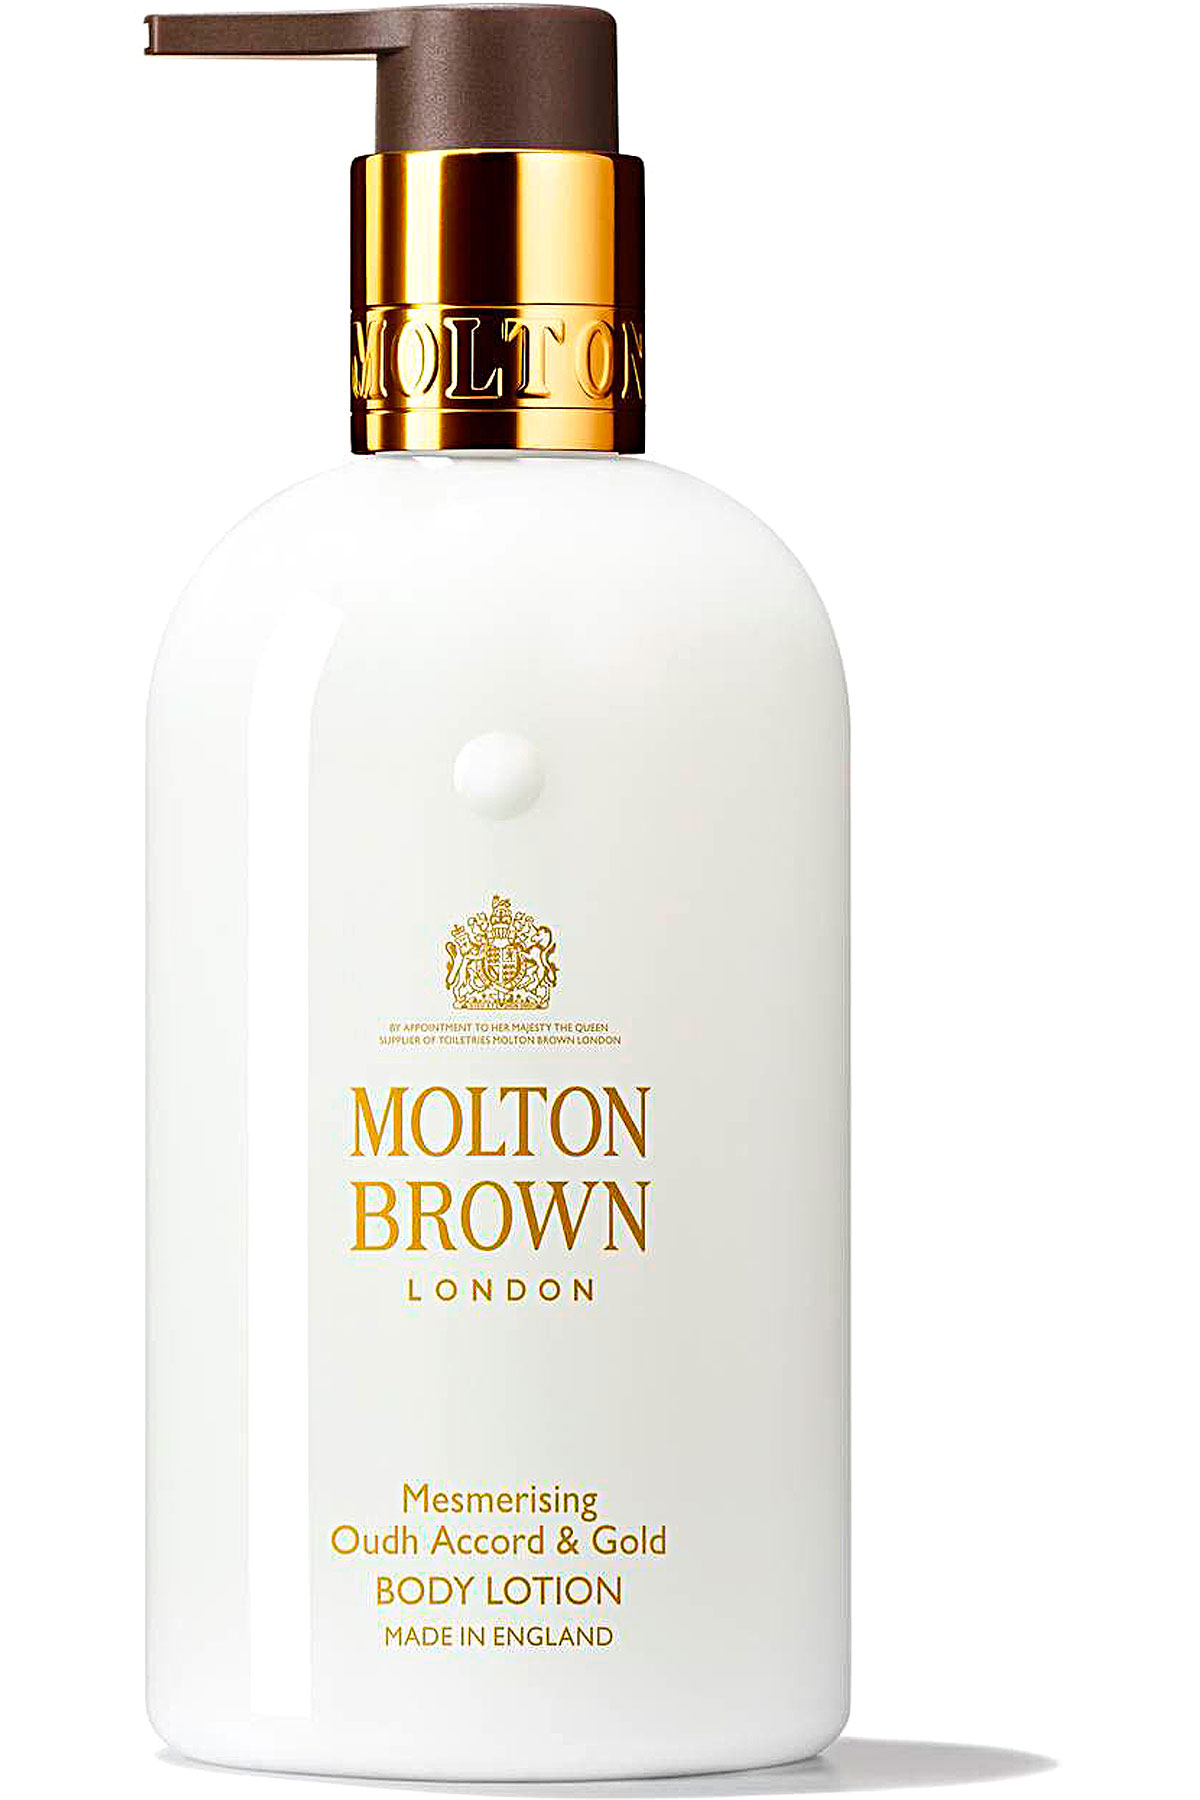 Molton Brown Beauty for Men, Mesmerising Oudh Accord & Gold - Body Lotion - 300 Ml, 2019, 300 ml